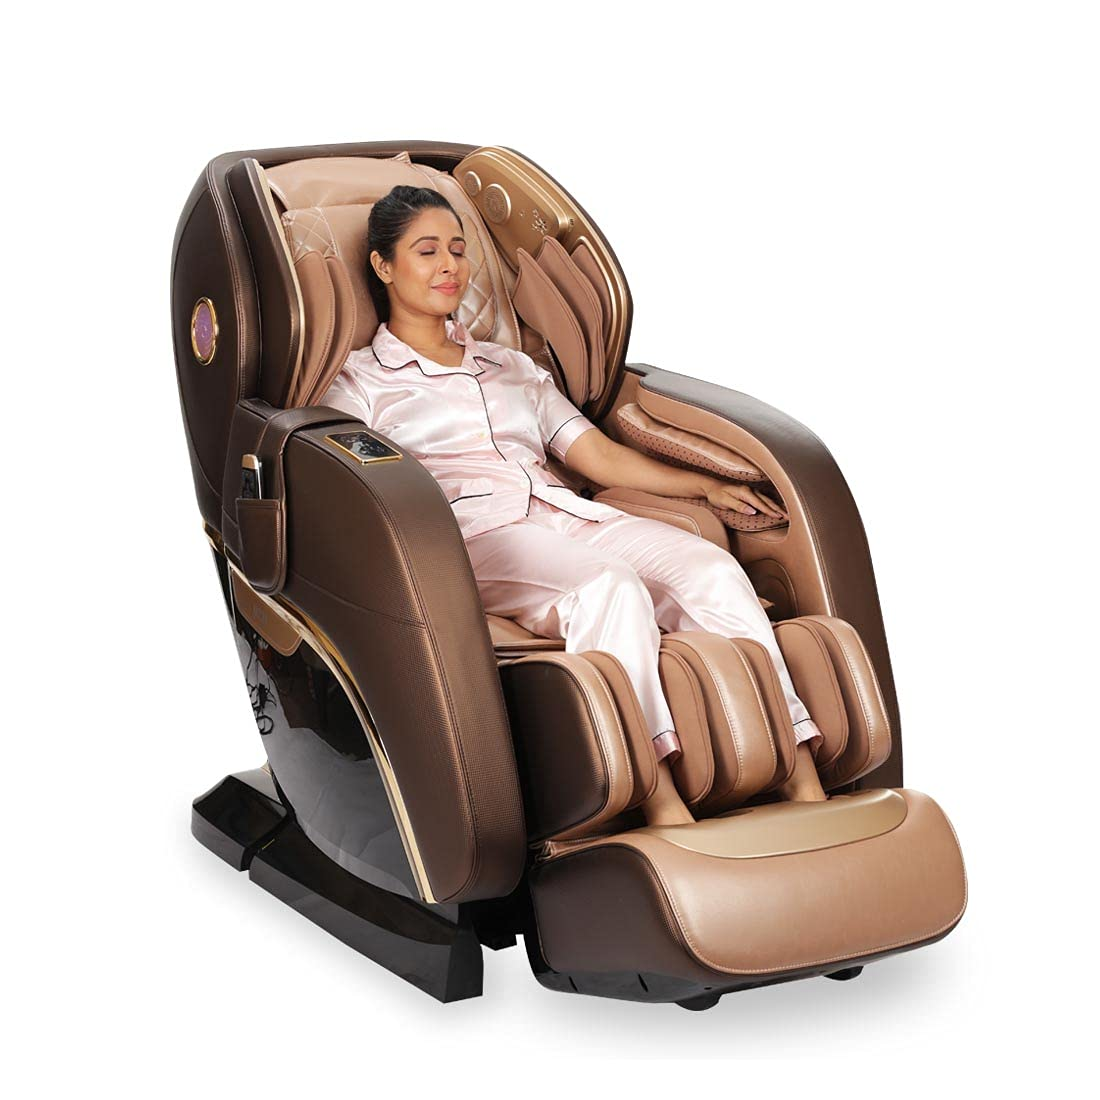 Best Comfortable Ultra Recliner 4D Full Body Massage Chair for Home and Office in 2021